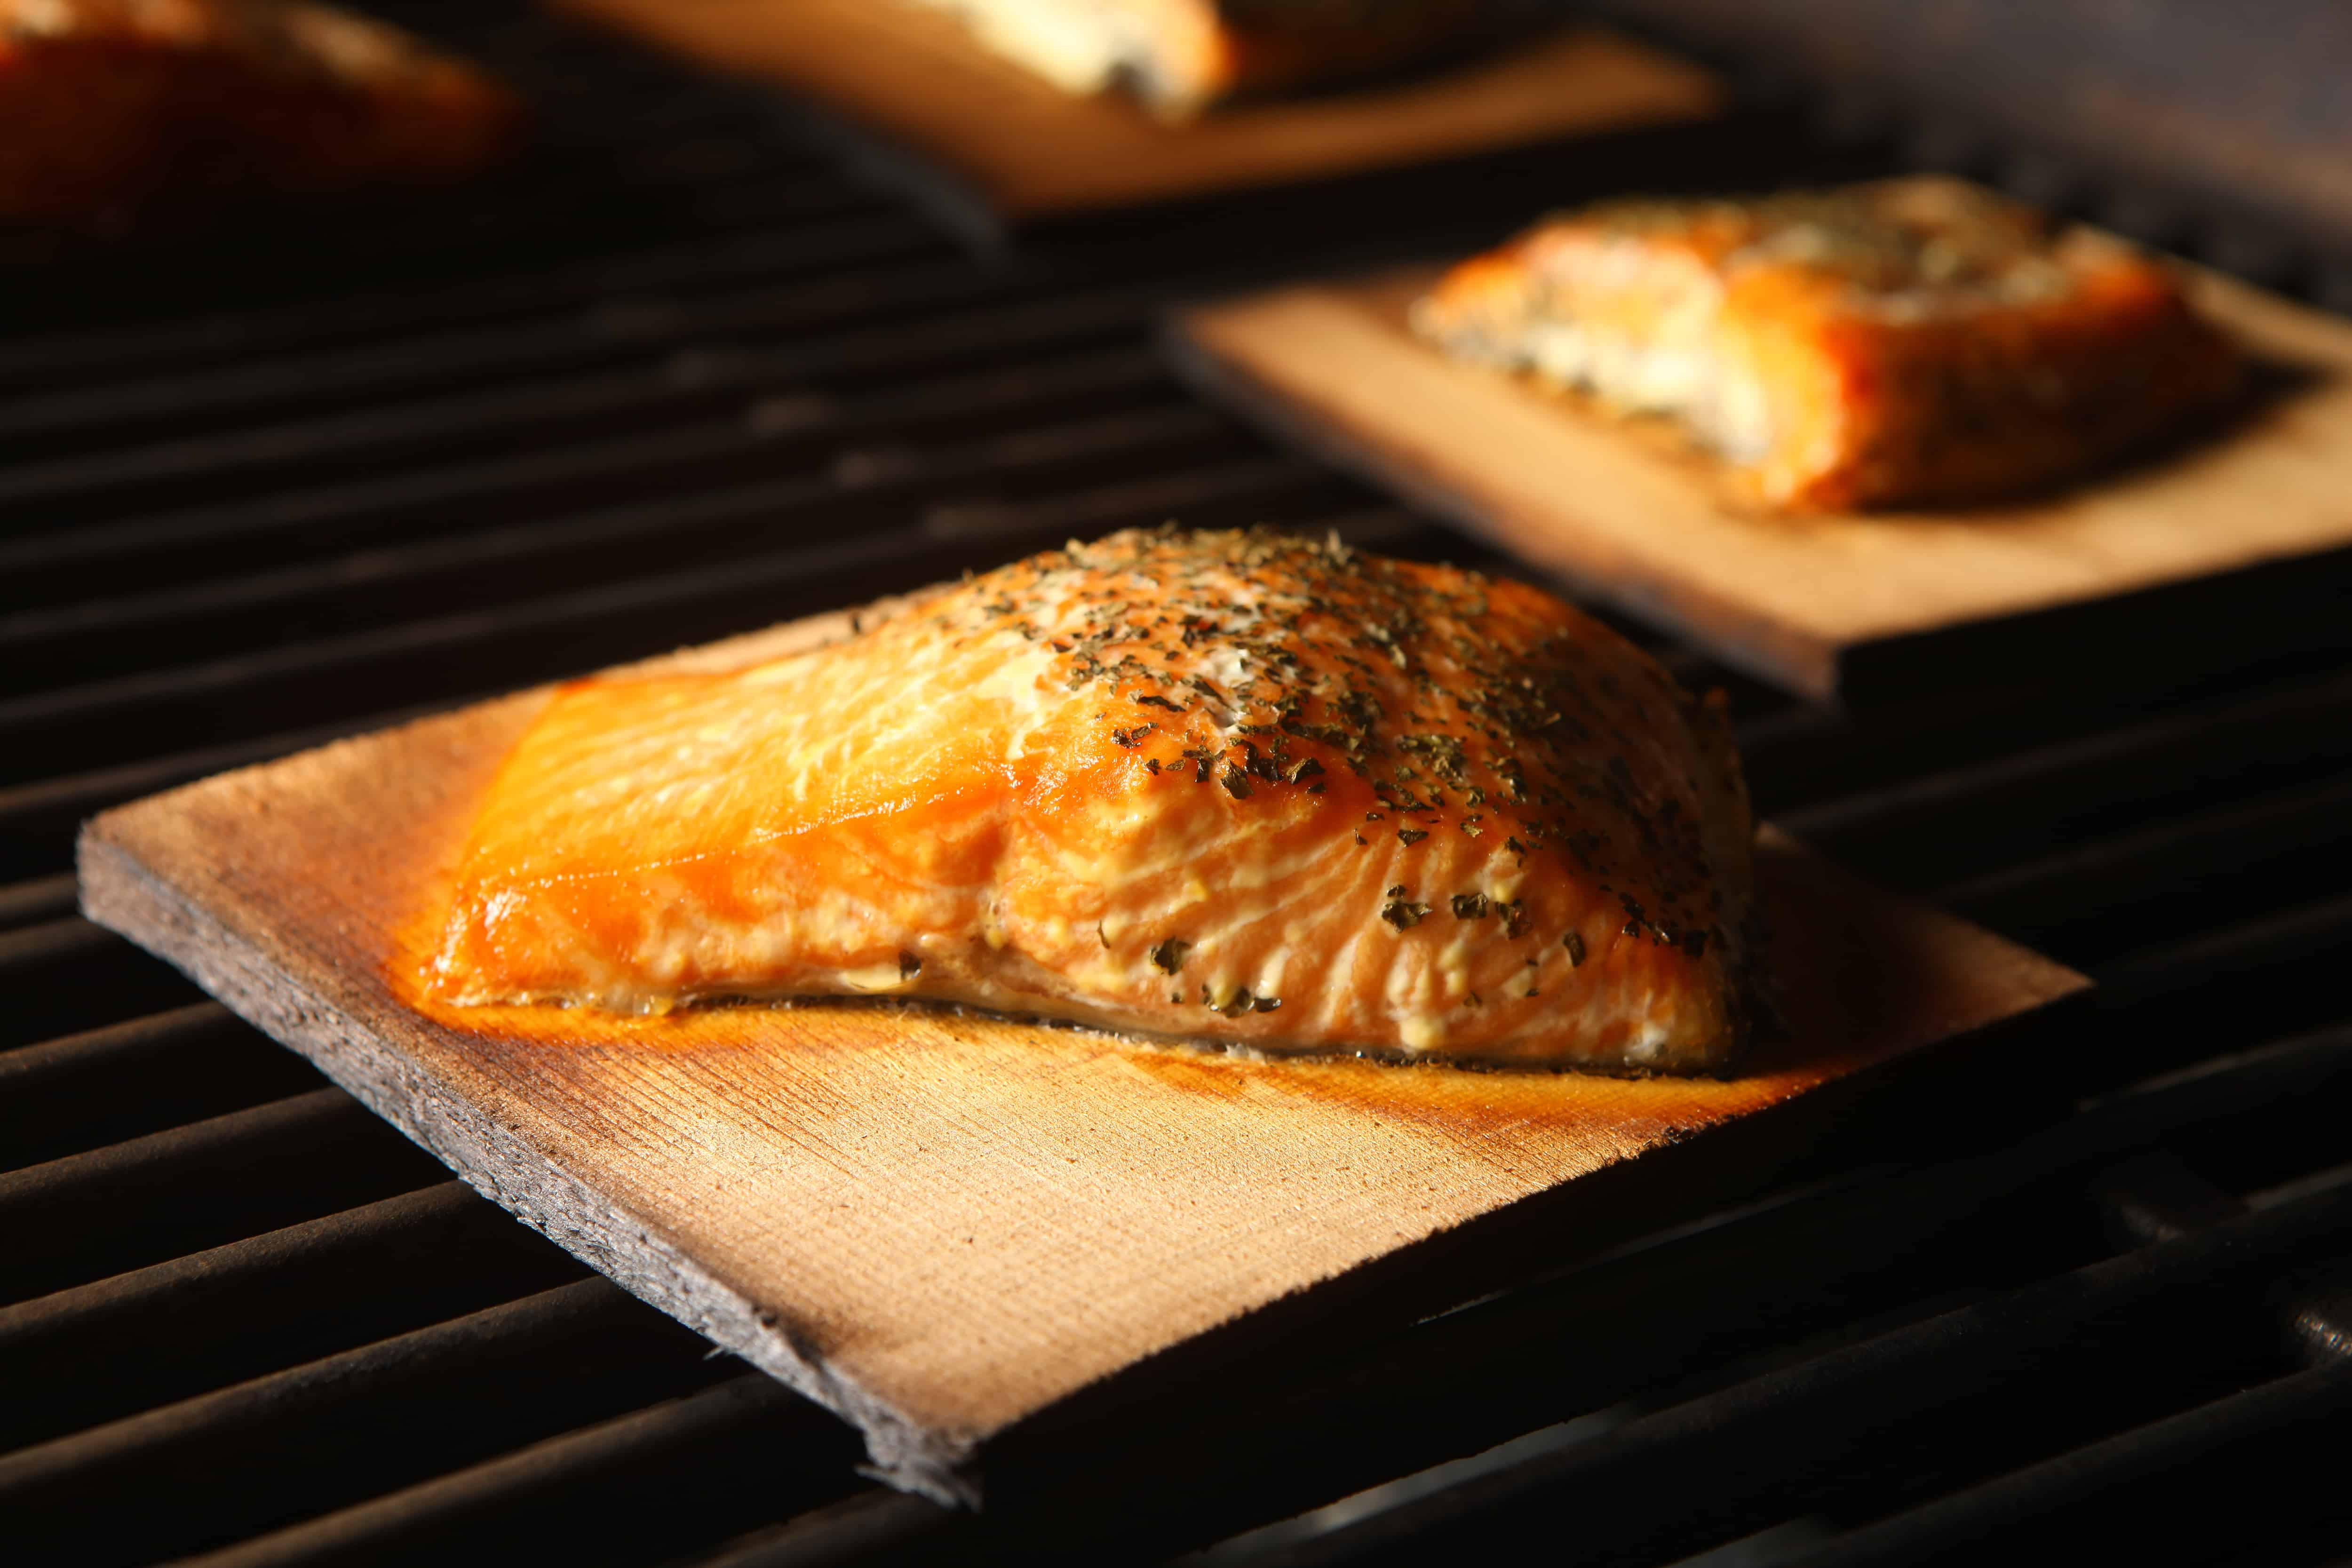 How to choose the perfect grilling plank gourmet grillmaster for Grilling fish on cedar plank